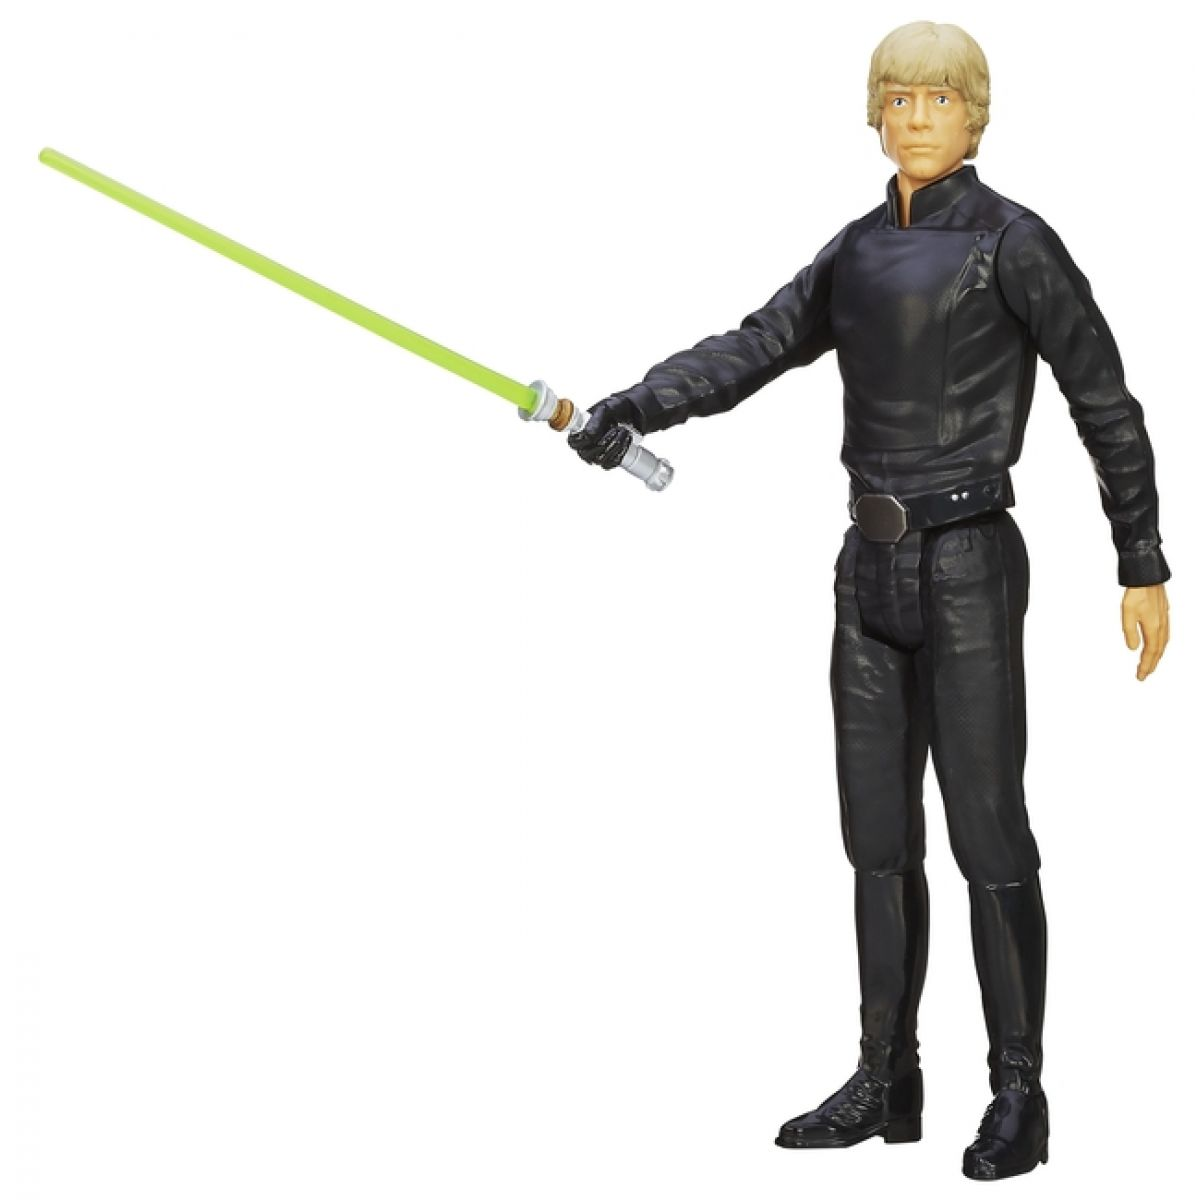 Hasbro Star Wars figurka 30cm - Luke Skywalker